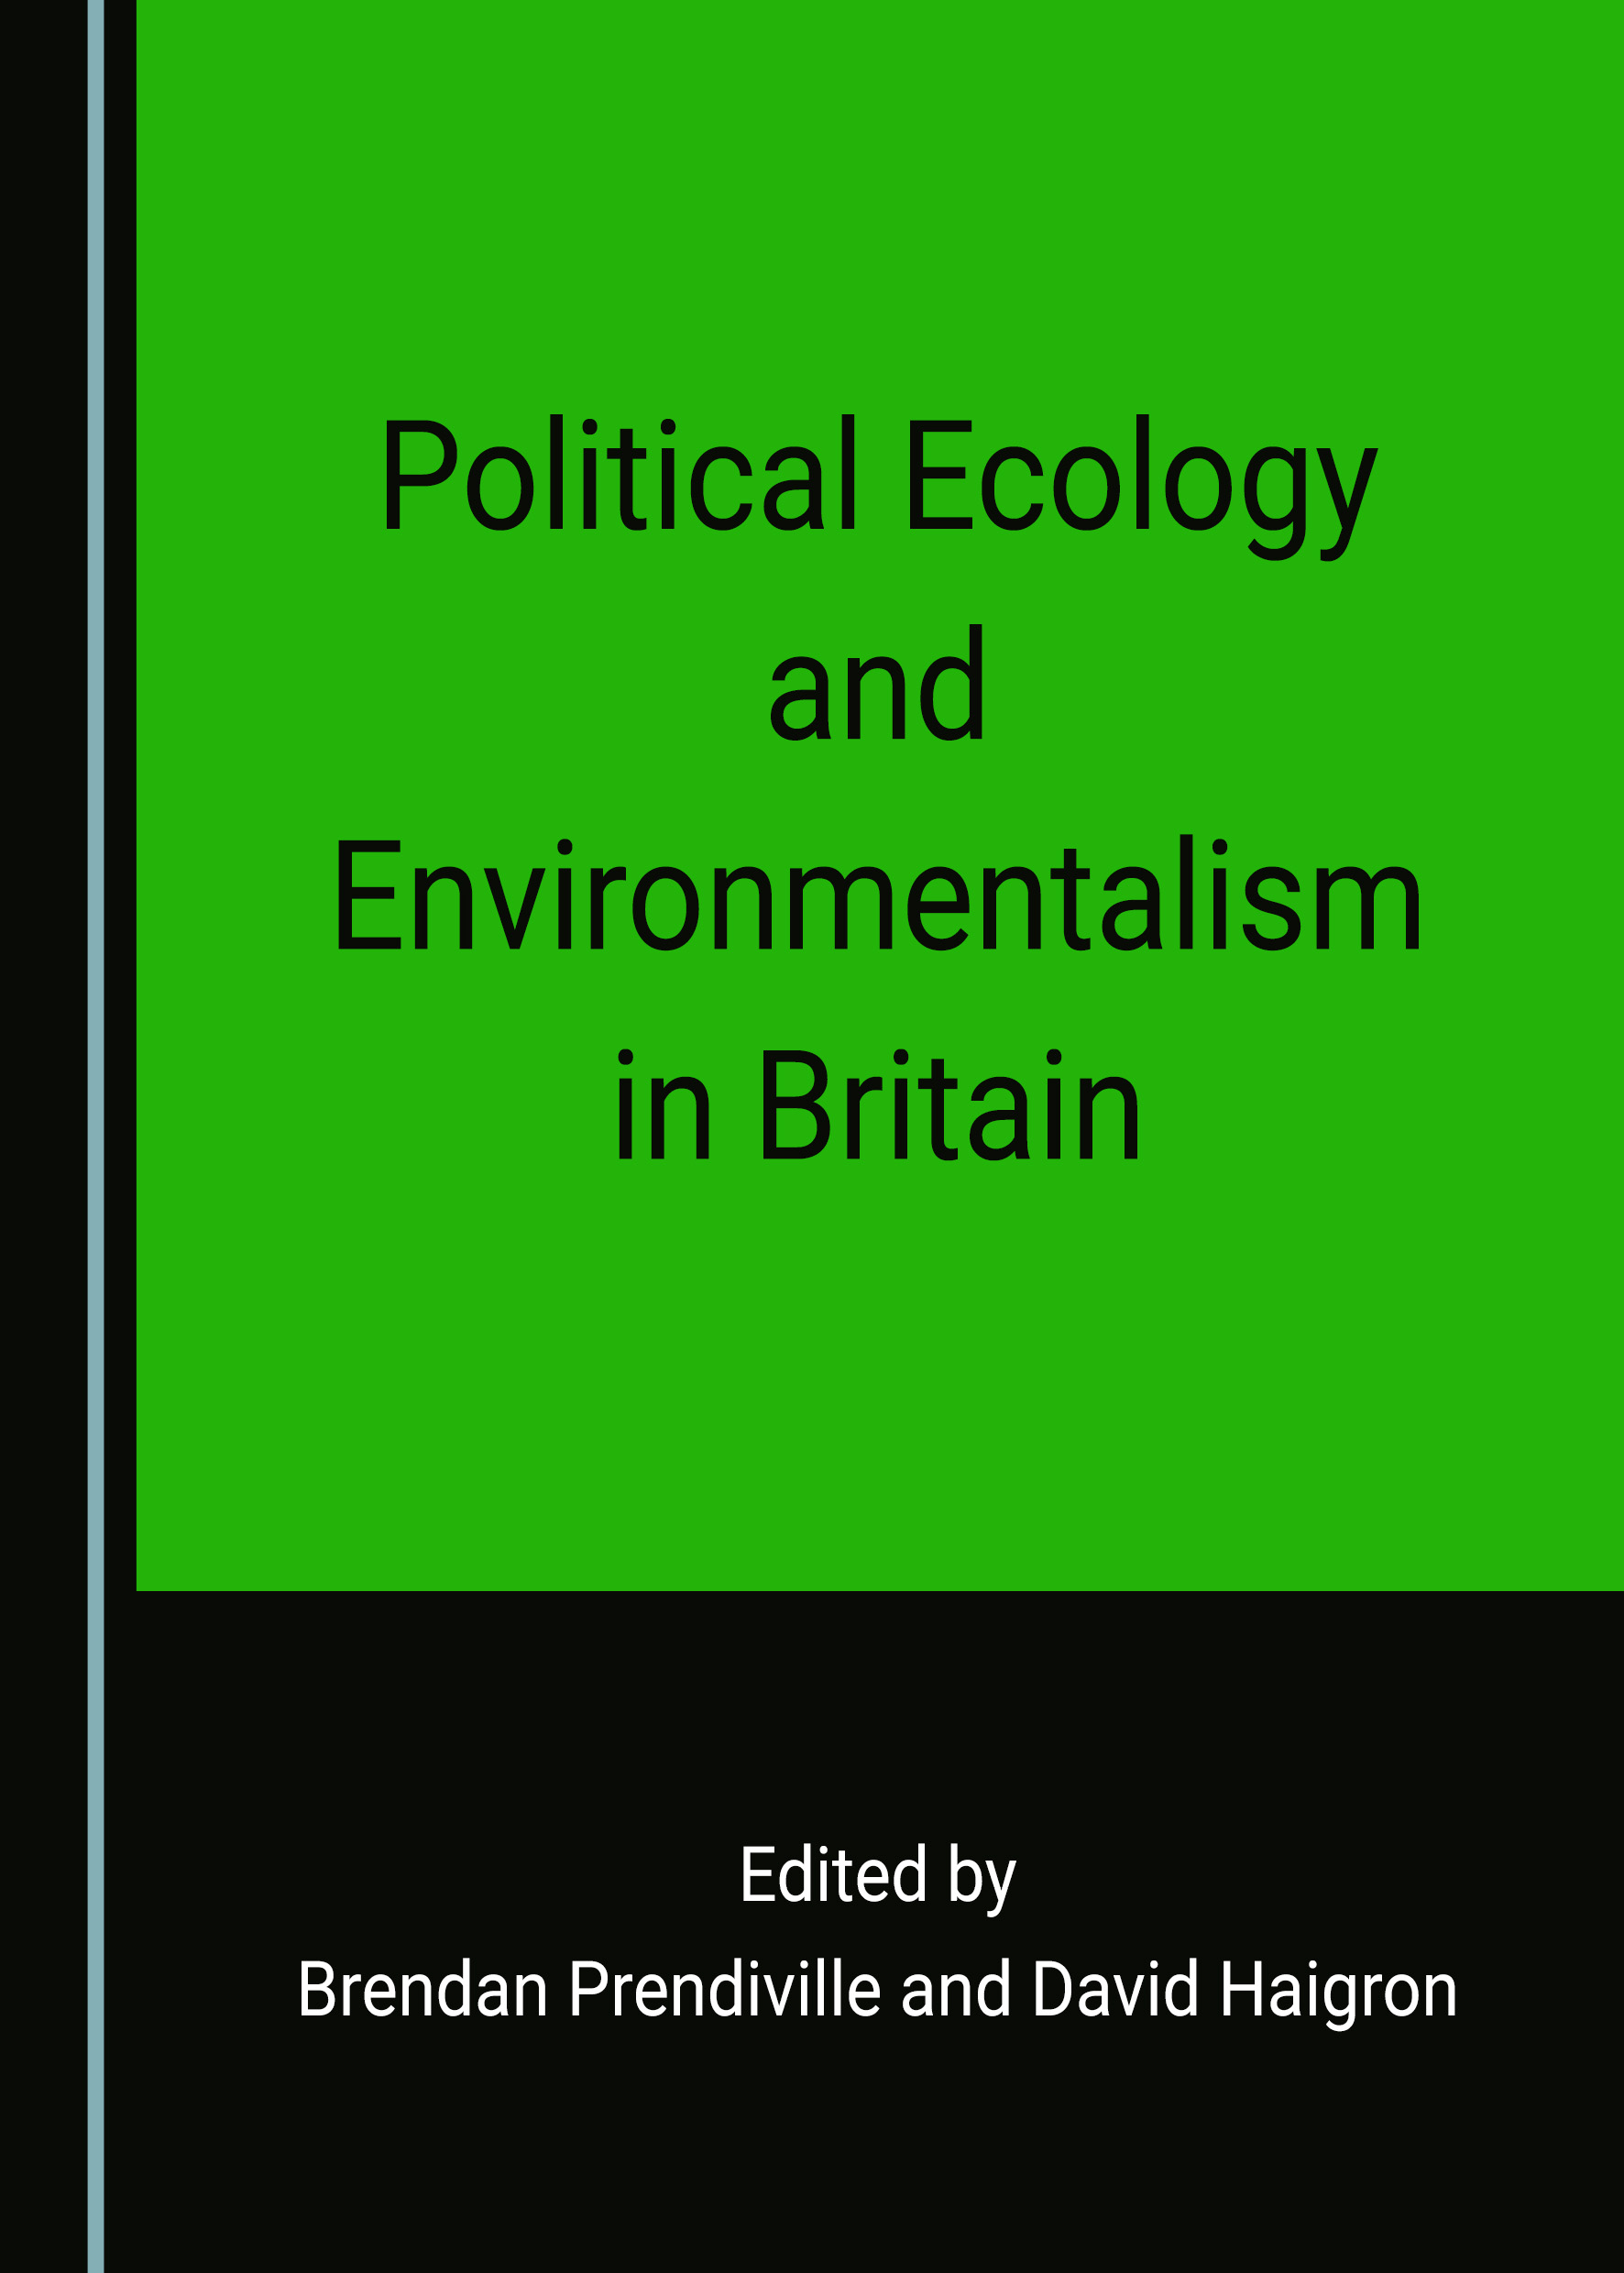 Political Ecology and Environmentalism in Britain